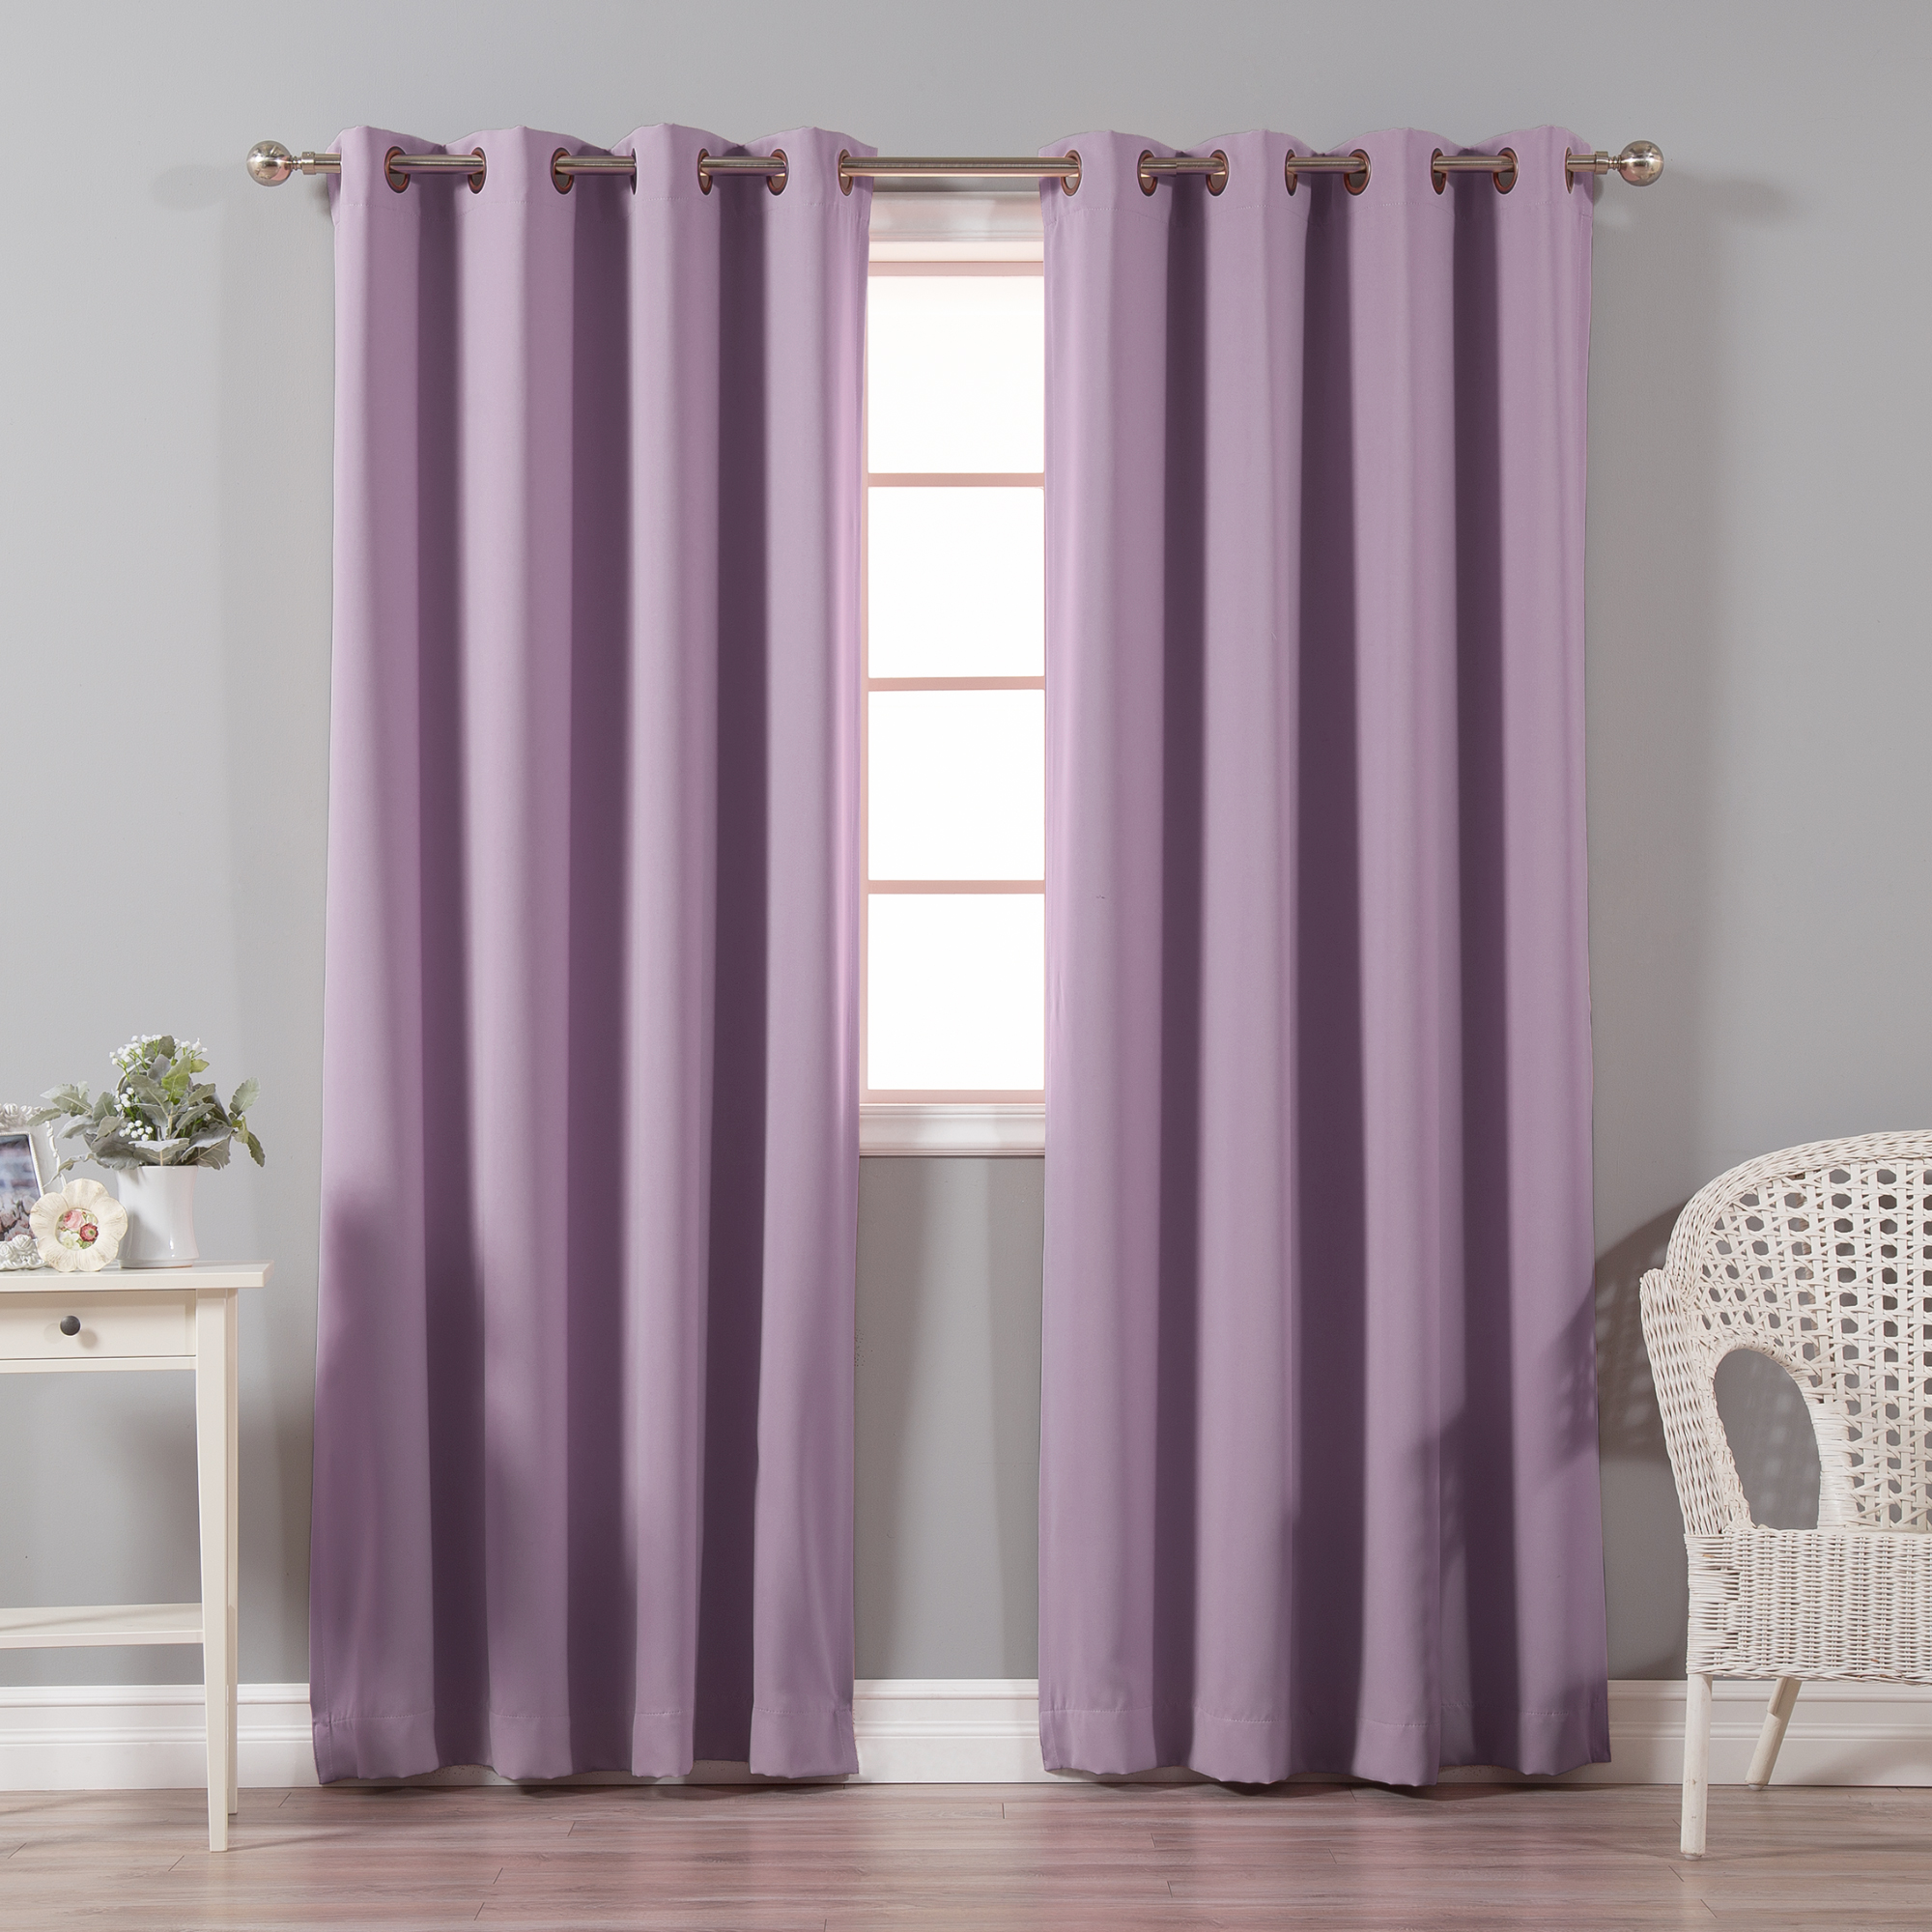 Quality Home Basic Thermal Blackout Curtains - Antique Bronze Grommet Top - Brick (Set of 2 Panels)